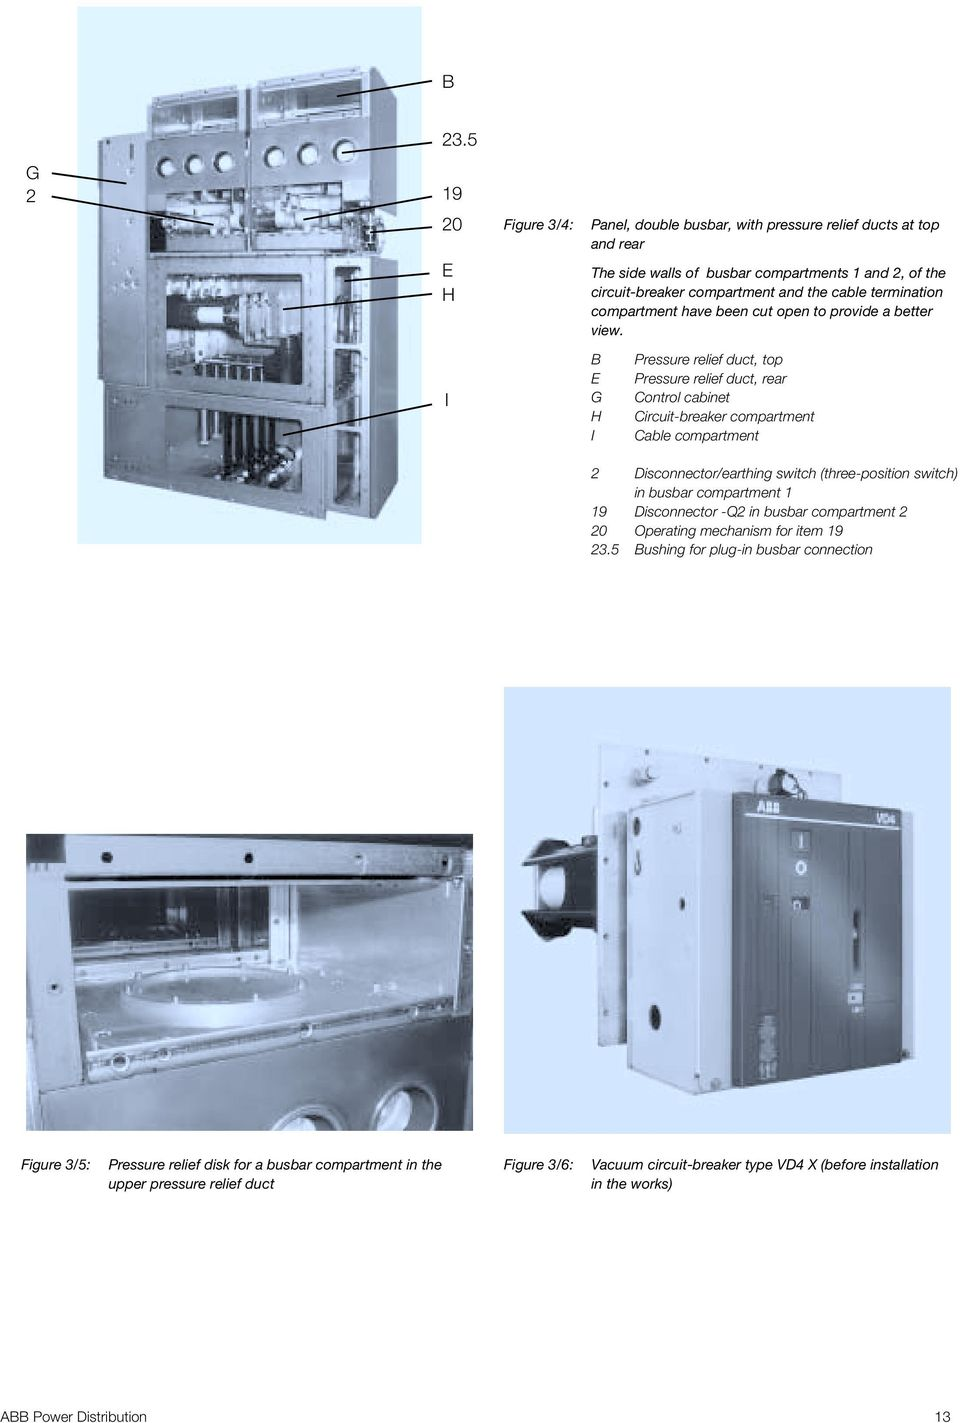 Zx2 Gas Insulated Medium Voltage Switchgear Instruction Manual Ba Figure 2 Circuit Breaker Panel With A Switch I B E G H Pressure Relief Duct Top Rear Control Cabinet